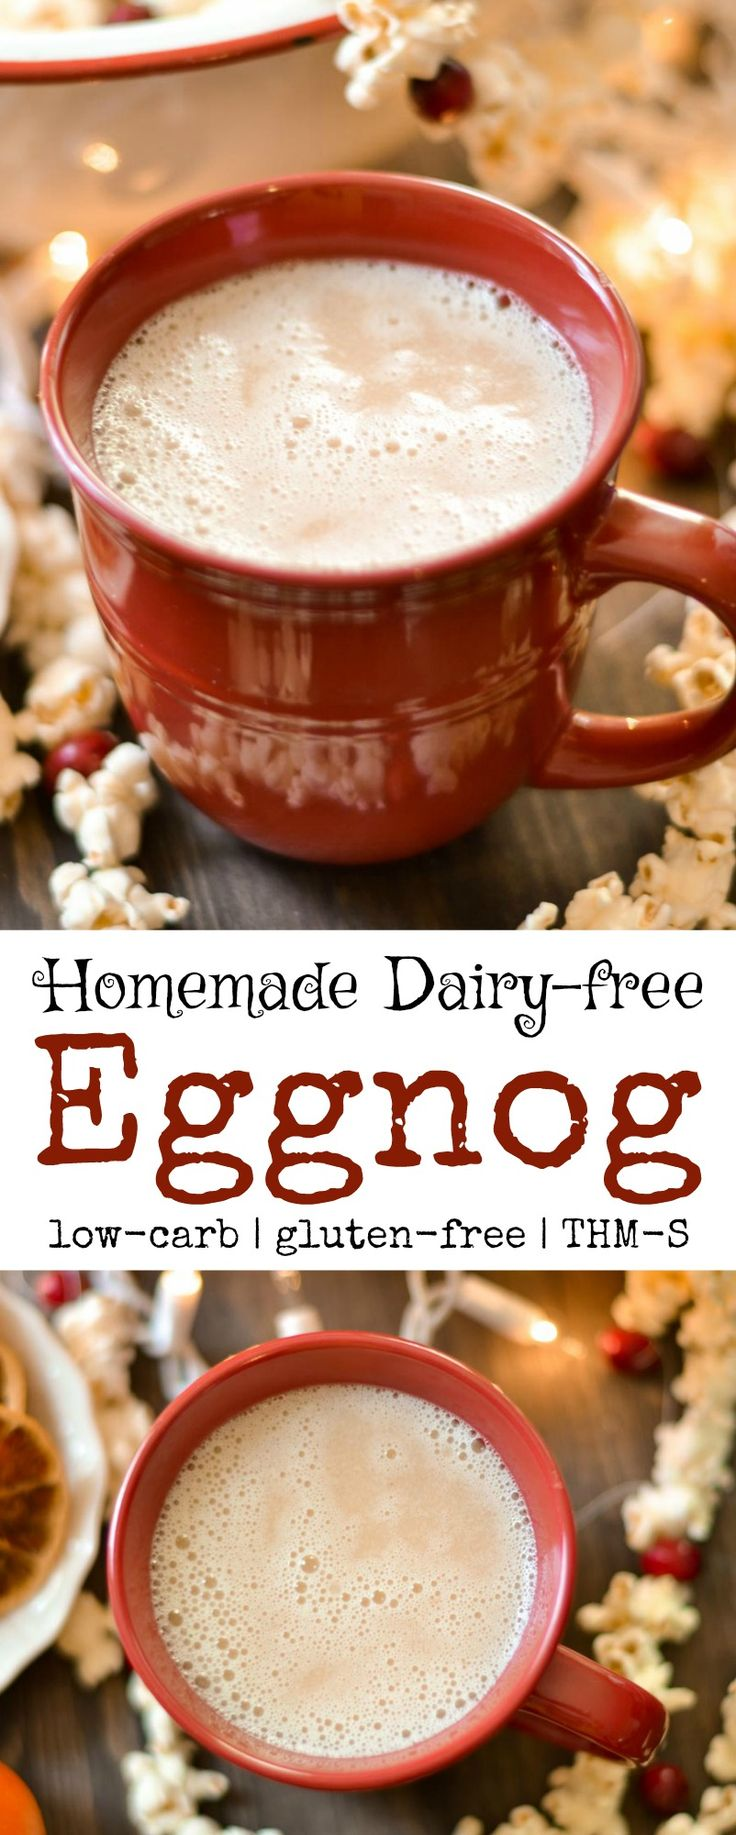 Easy to make delicious homemade dairy-free eggnog! Perfect for the holidays! Gluten-free, sugar-free, and low-carb. Trim Healthy Mama - S